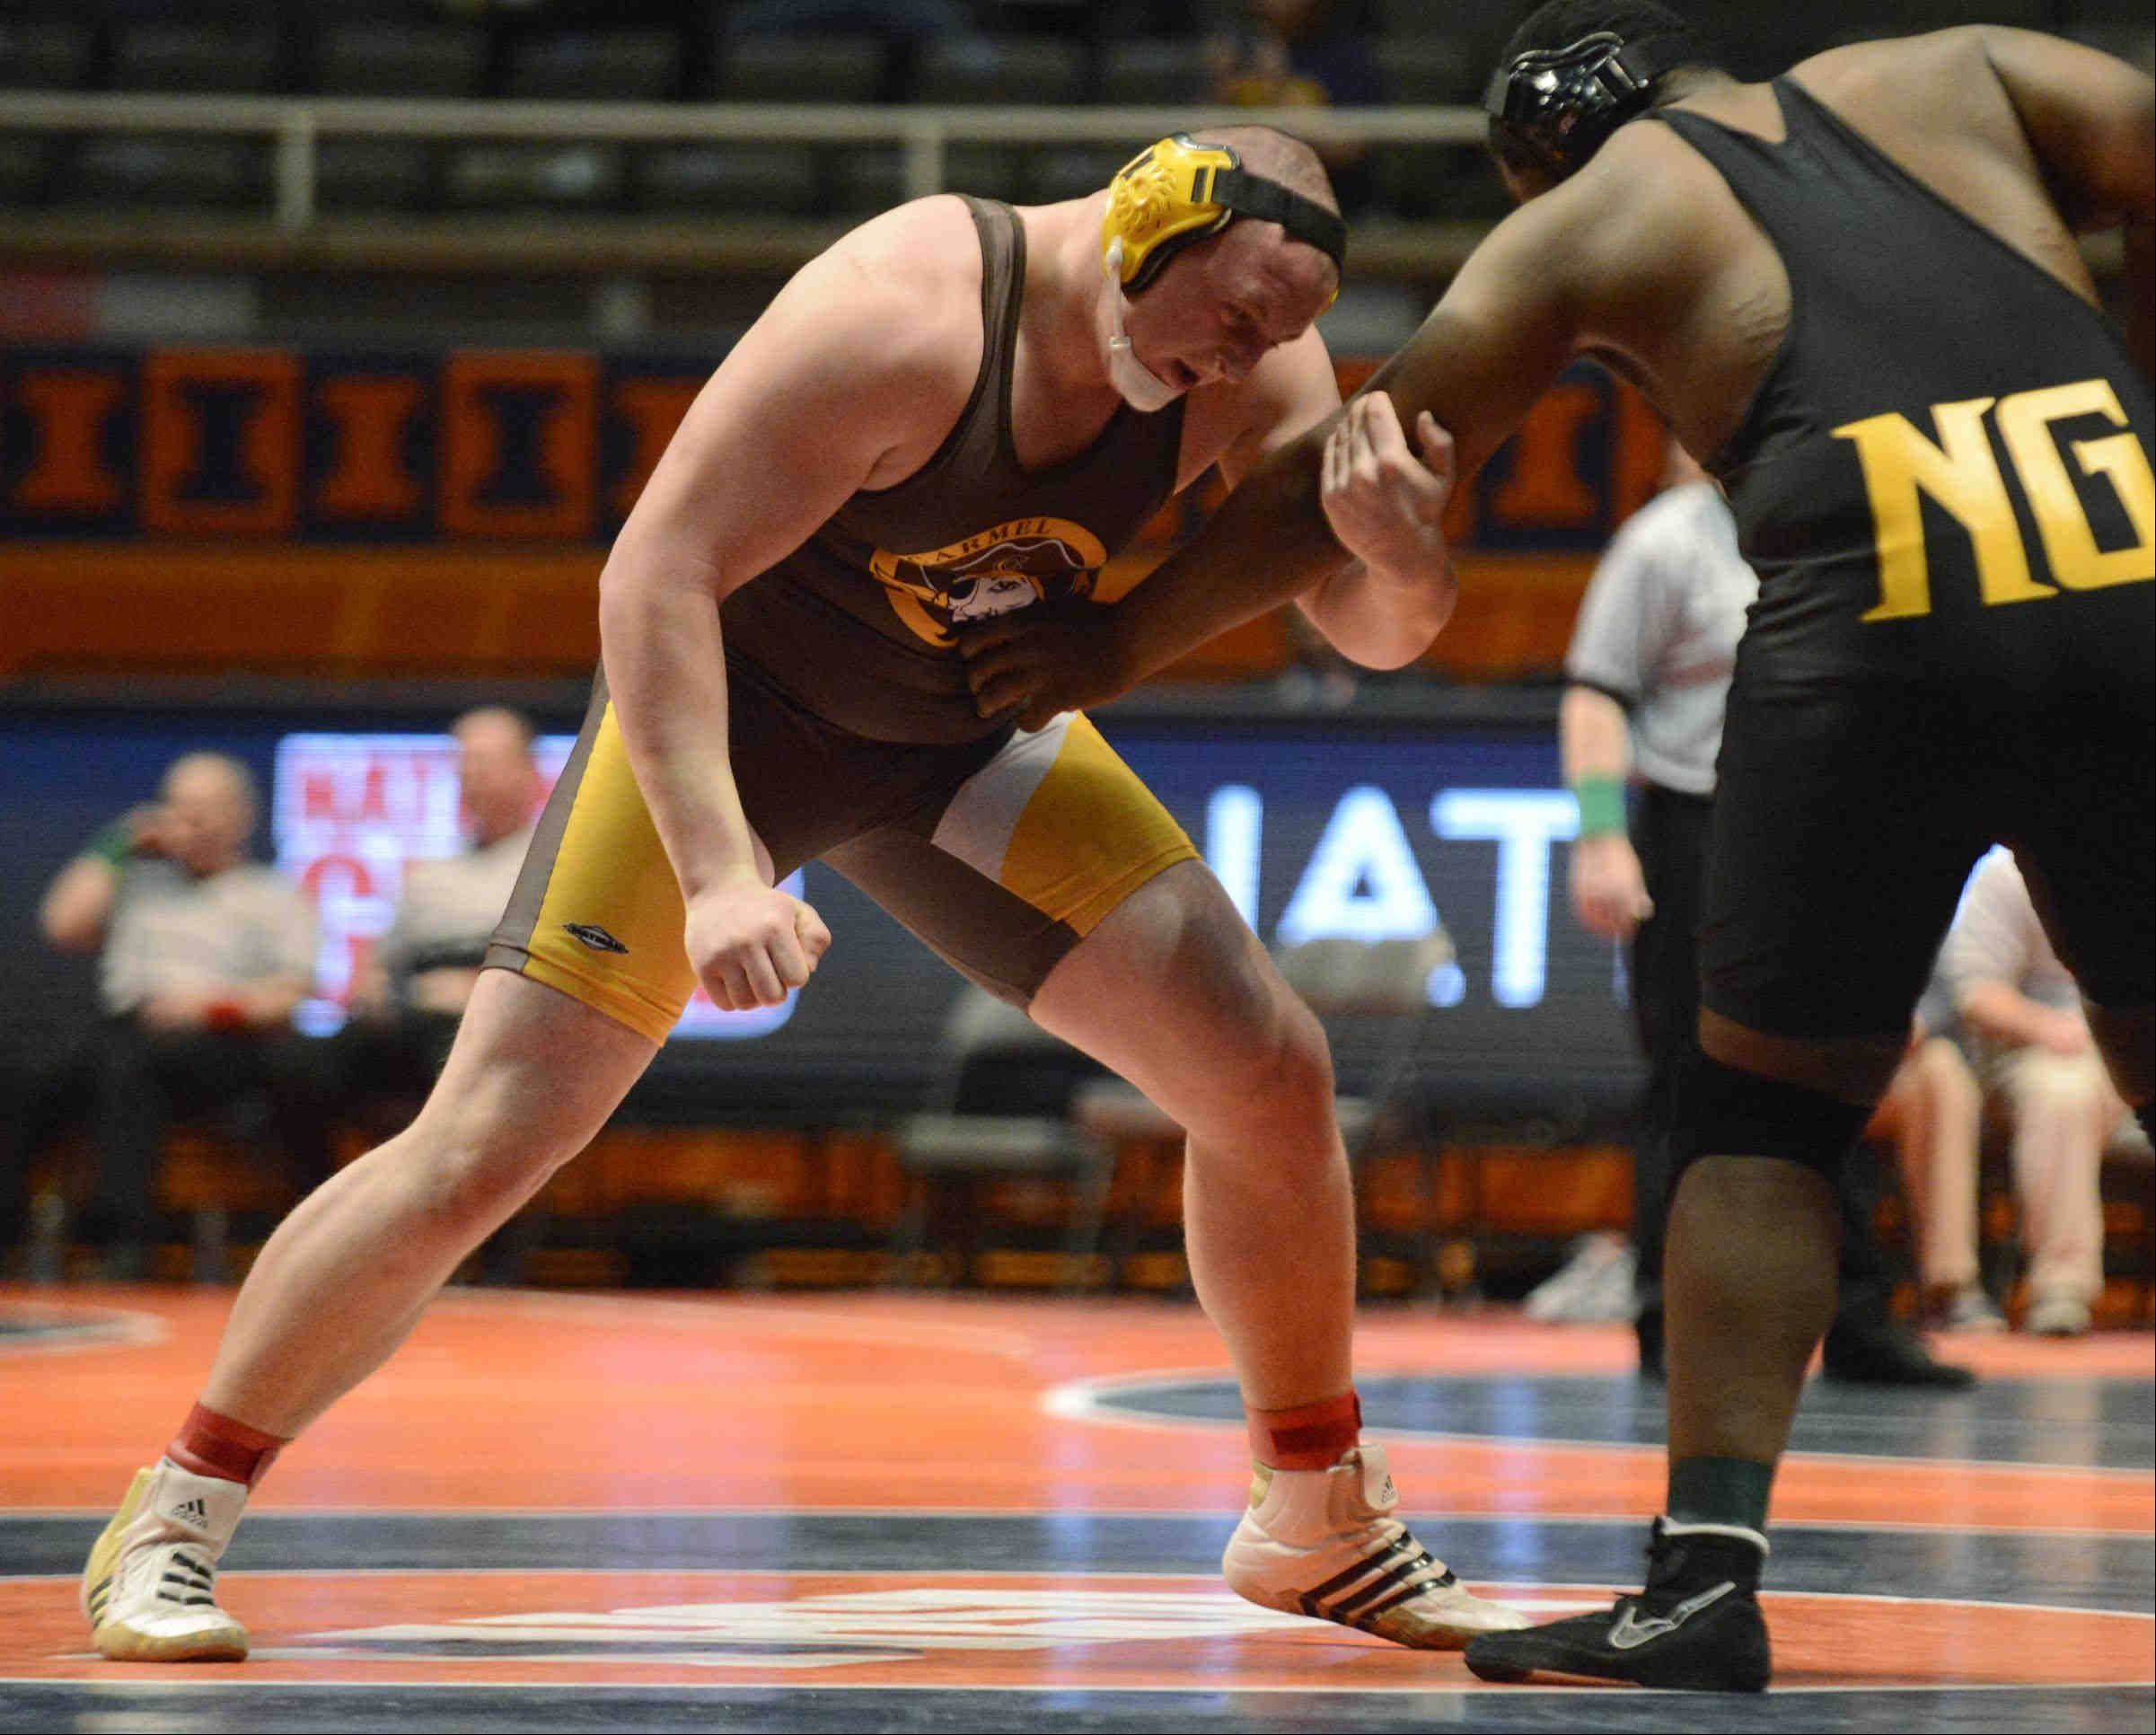 Jake Cochrane of Carmel faces Lovontay Cobb of Chicago King in the Class 2A 285-pound IHSA third-place match at Assembly Hall in Champaign.